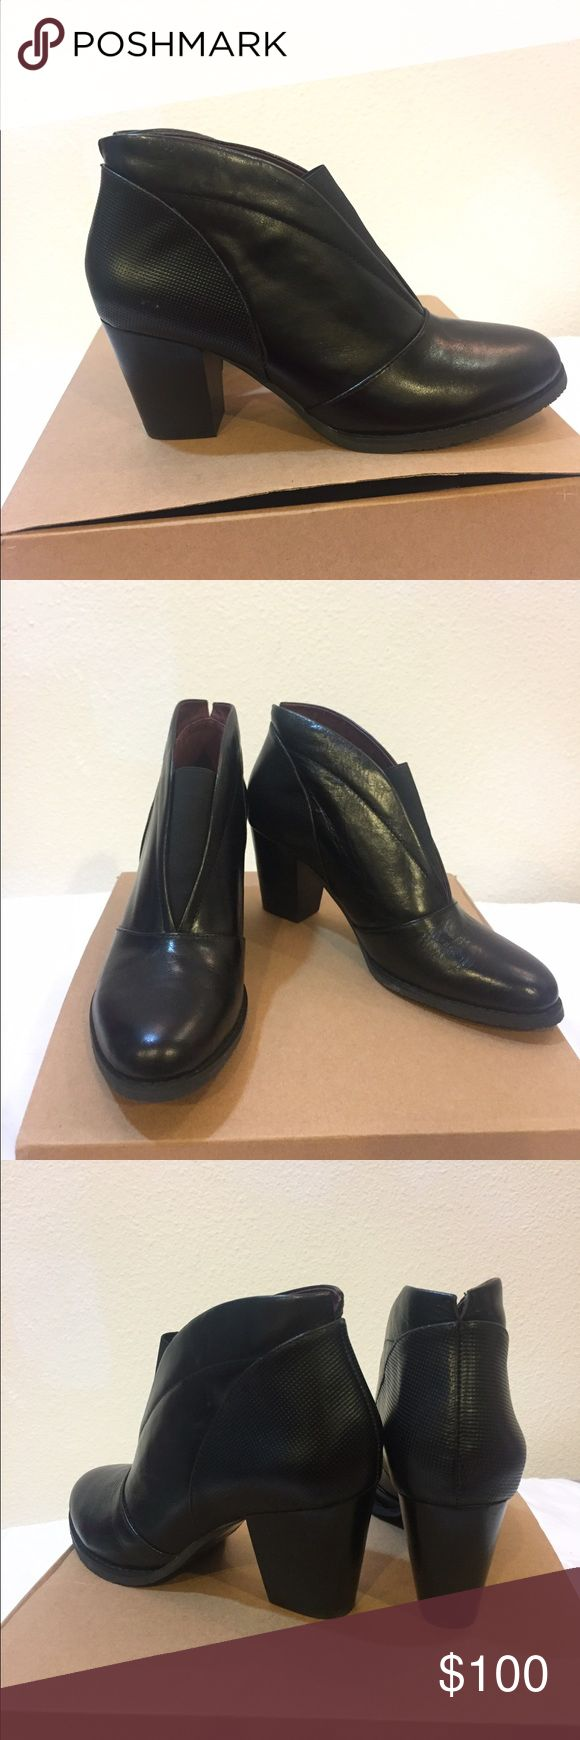 Esska Ankle Dip Booties, size 7 Black leather Esska ankle booties. 2 inch heels, front ankle dip. Brand new, unworn. Esska Shoes Ankle Boots & Booties